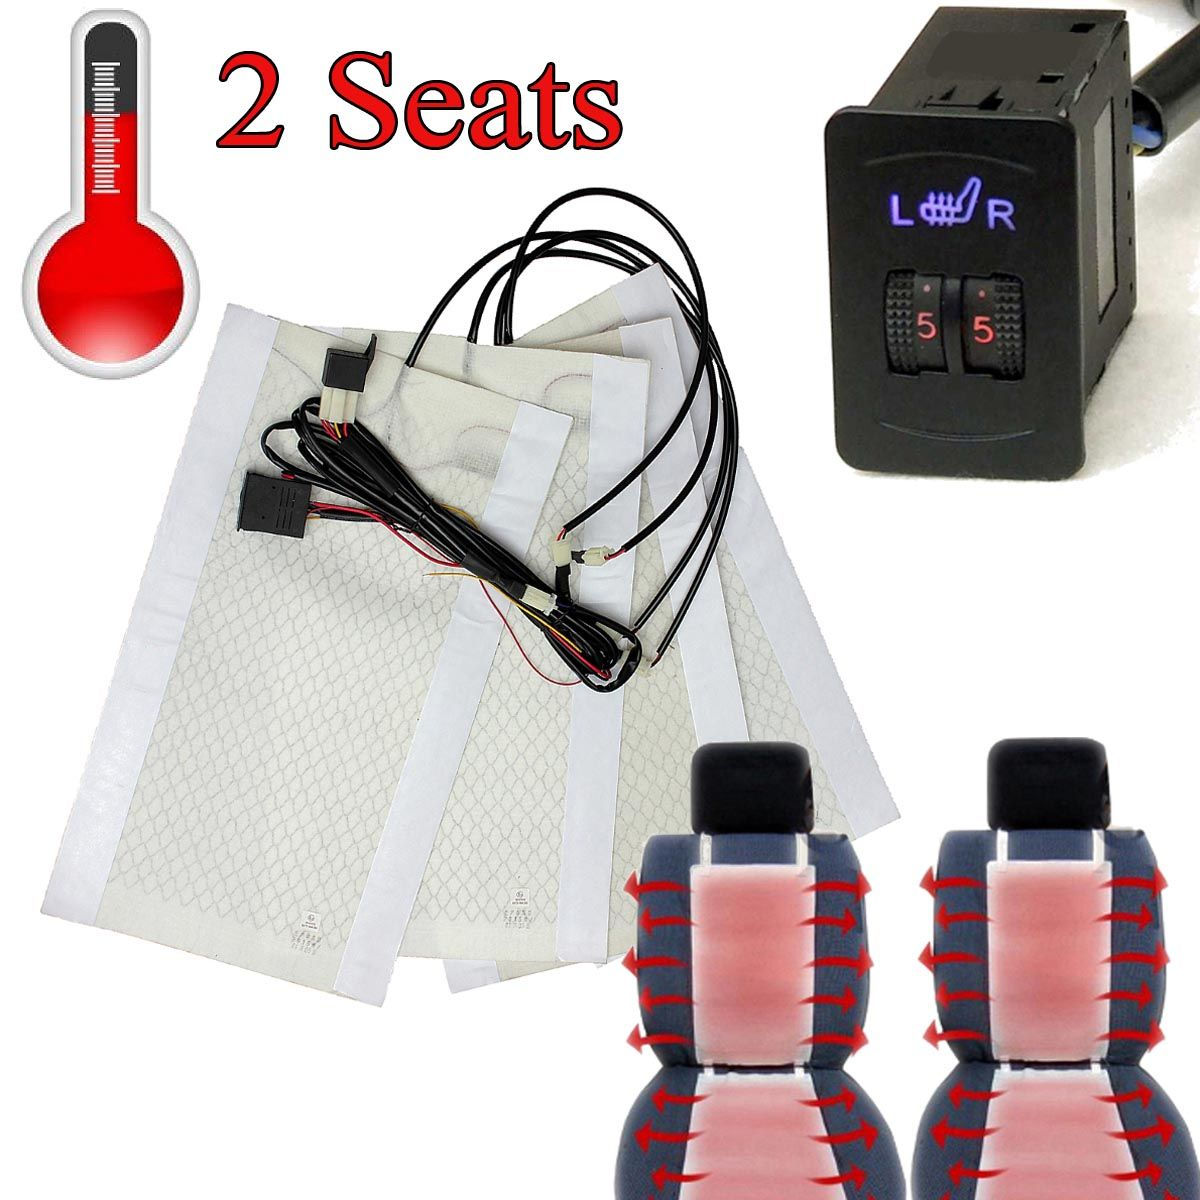 2 Seats 4 Pads Universal Carbo n Fiber Heated Seat Heater 12 V Pads 2 Dial 5 Level Switch  Winter Warmer Seat Covers